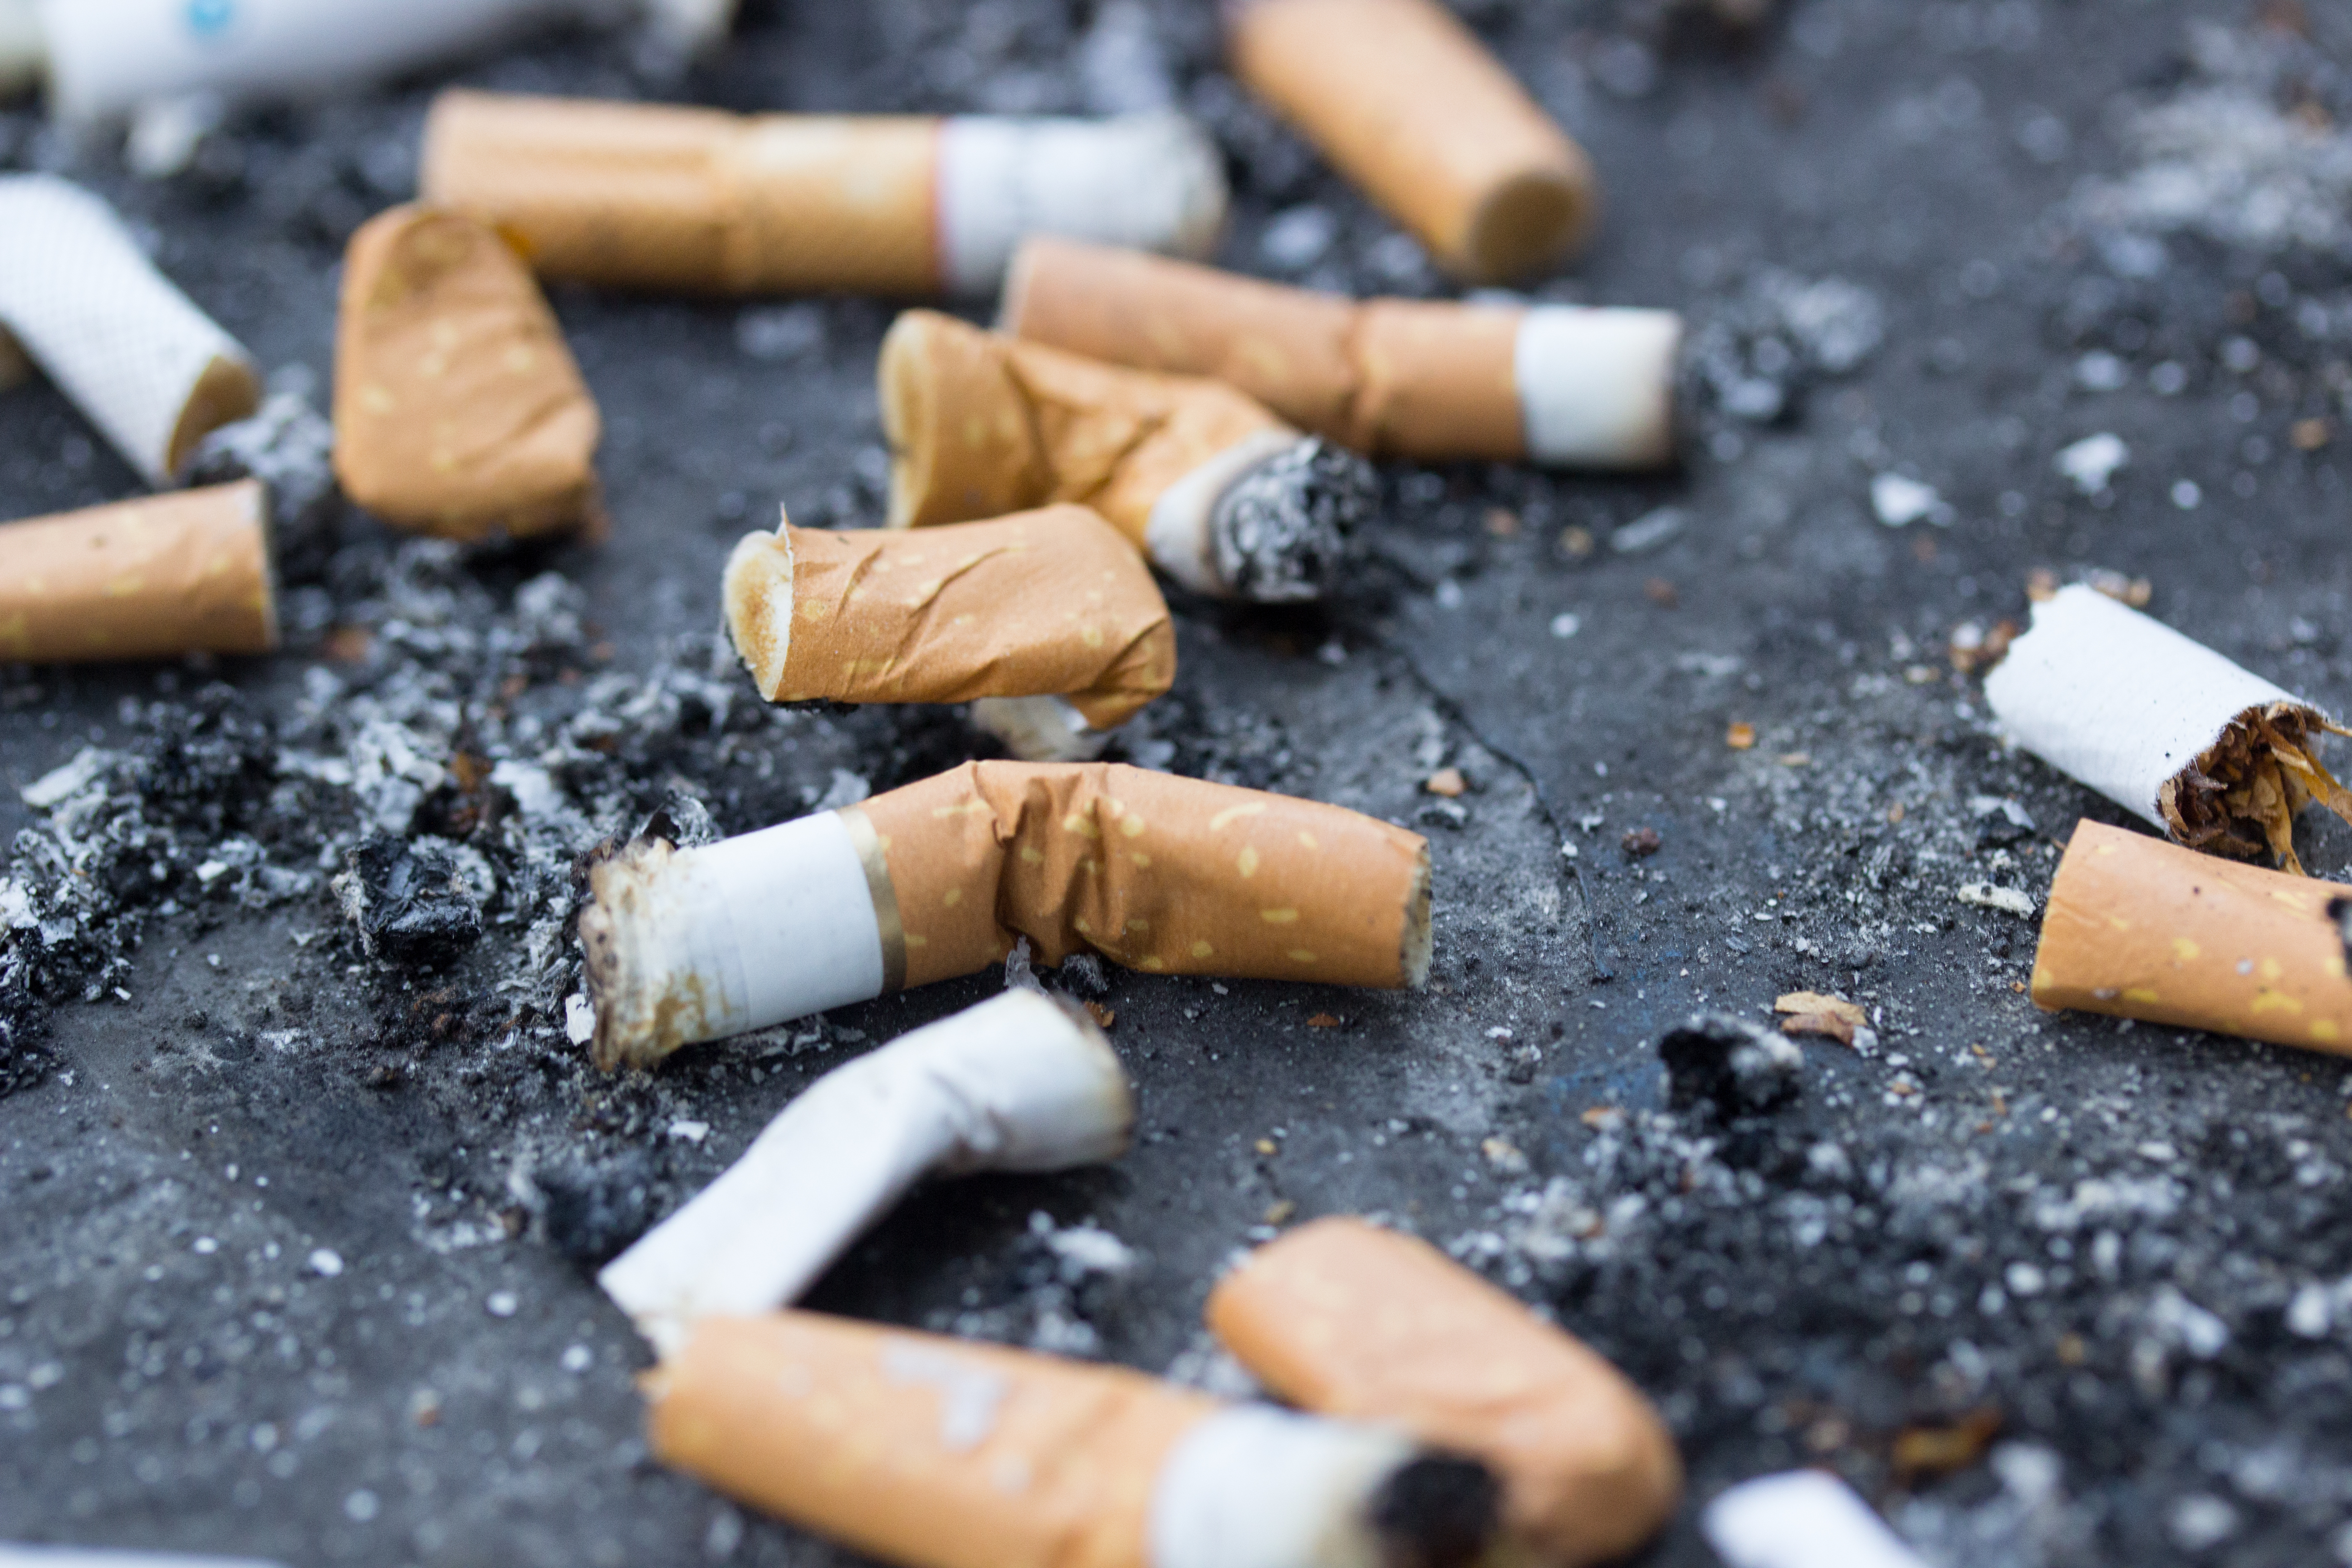 The survey of 487 points of sale around 243 schools in six states has found 233 of these vending tobacco products.